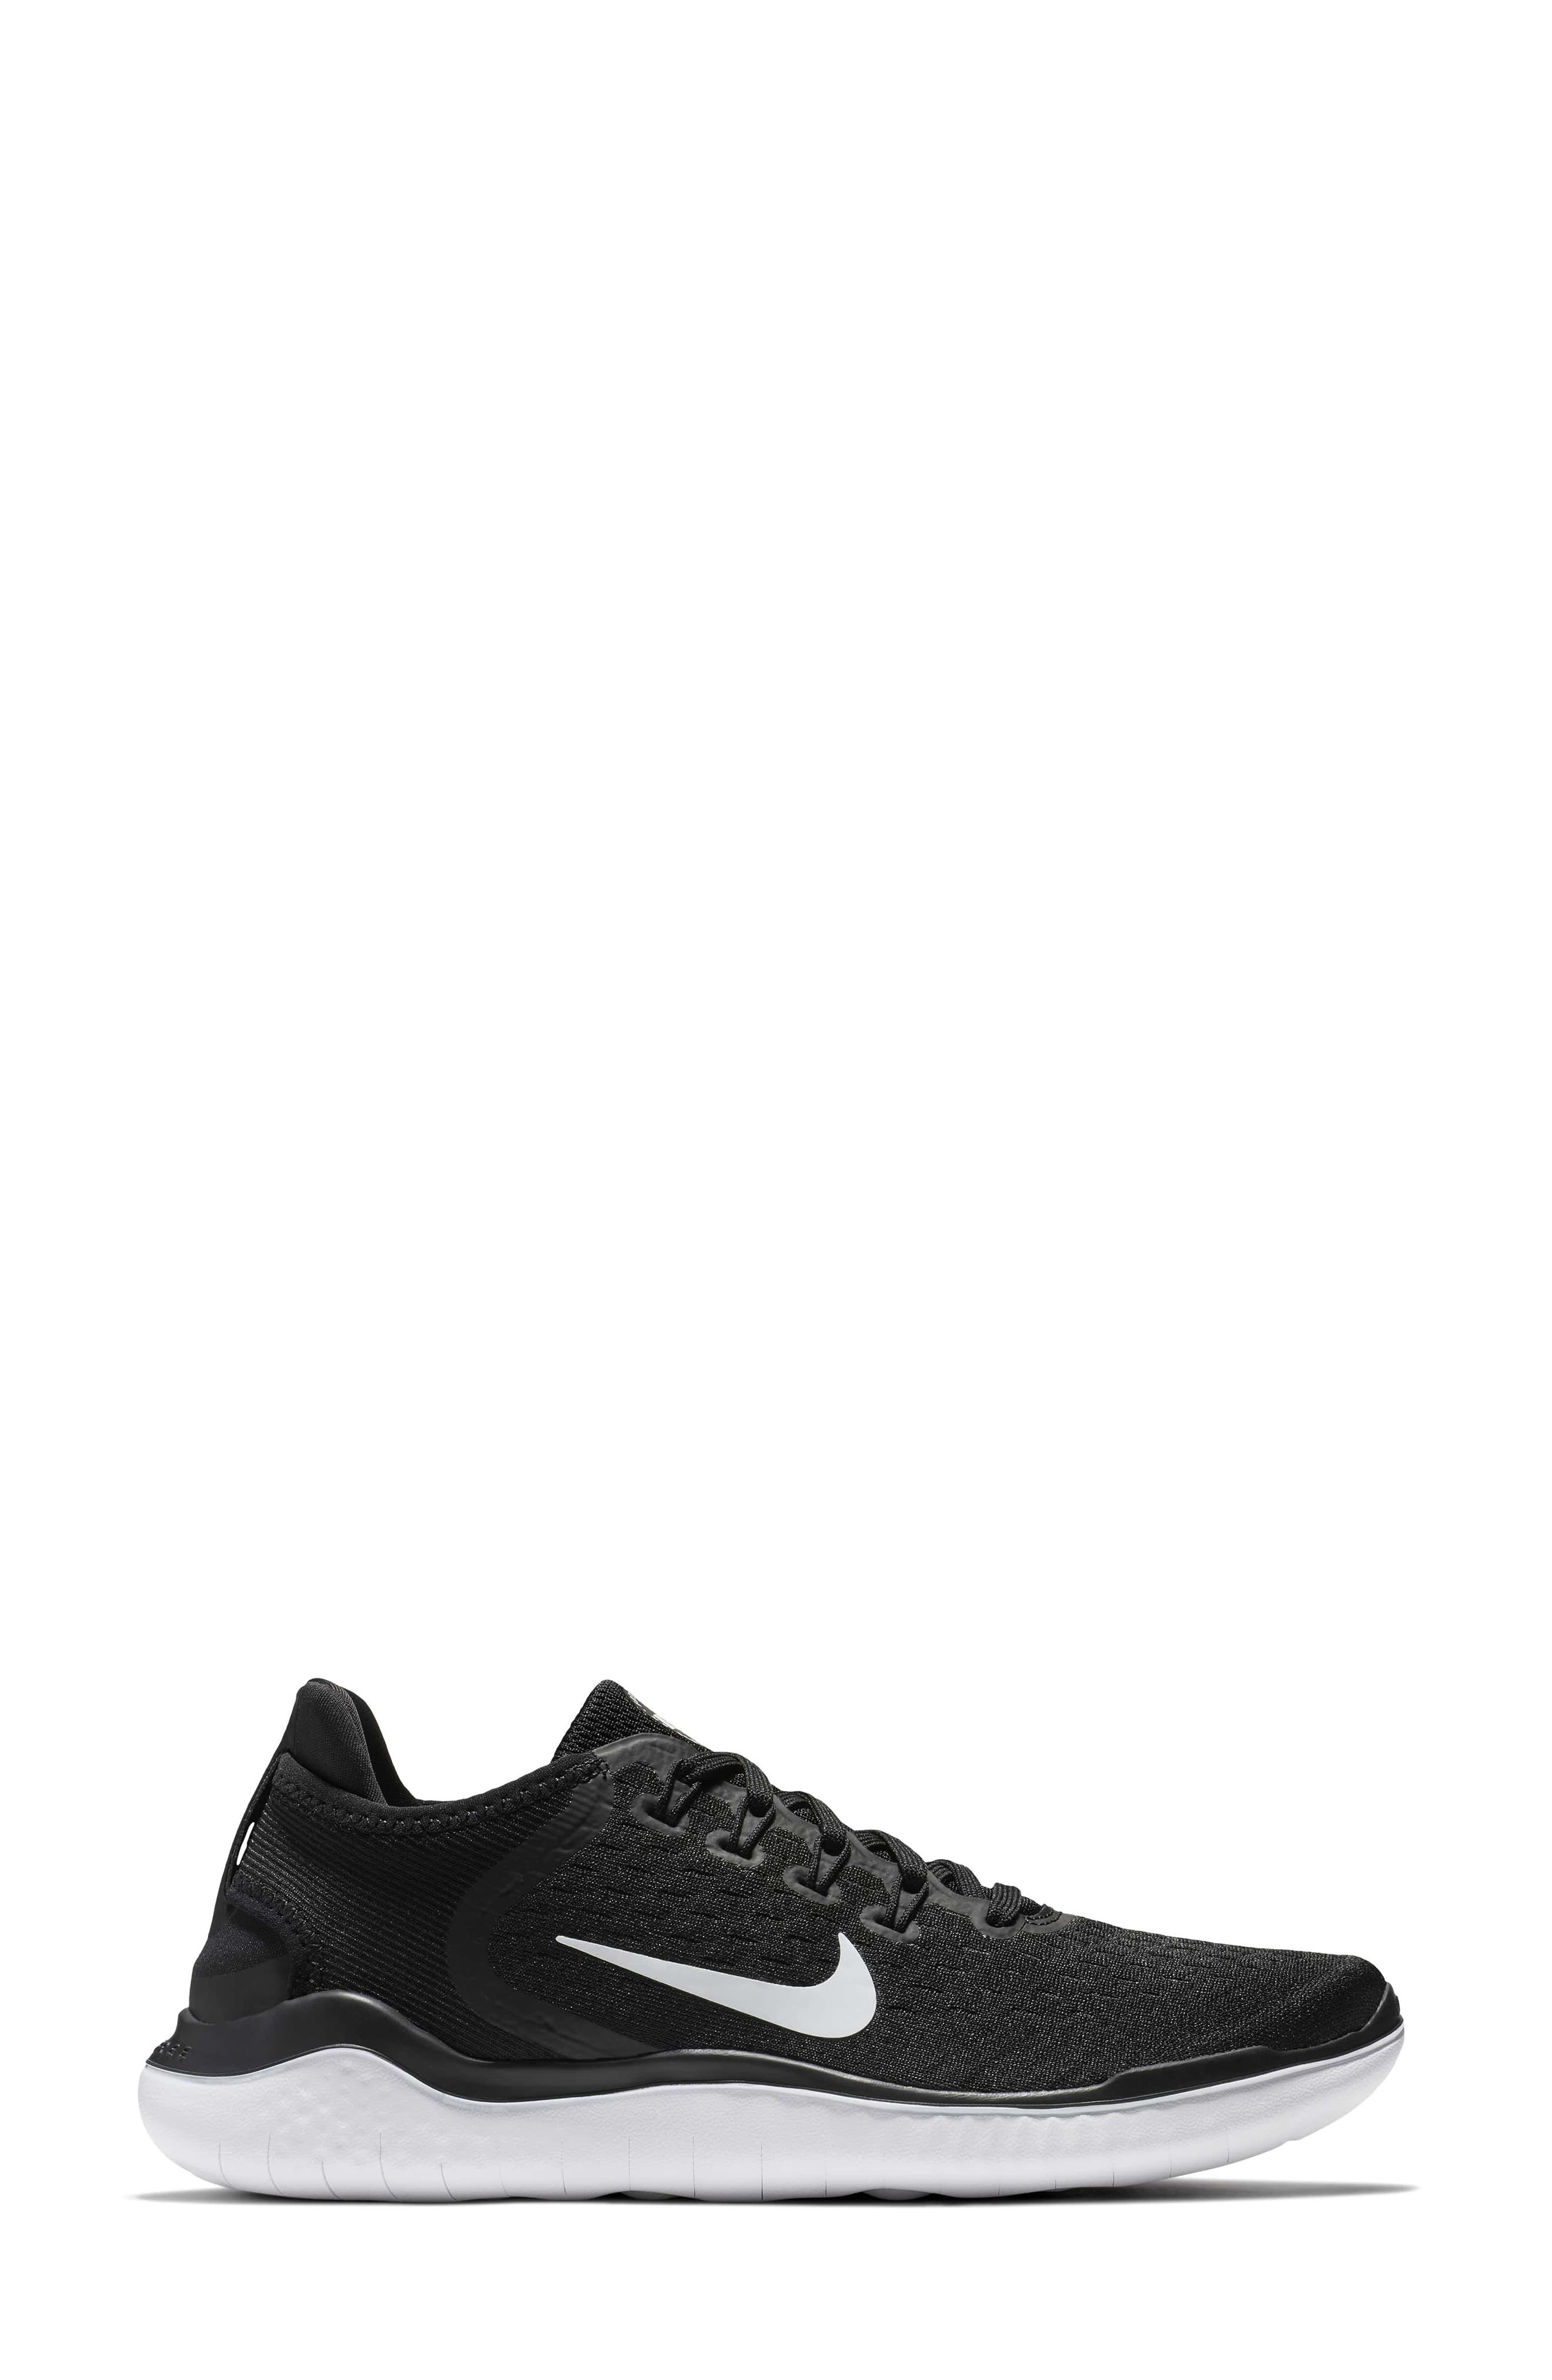 Free RN 2018 Running Shoe,                             Alternate thumbnail 3, color,                             Black/ White